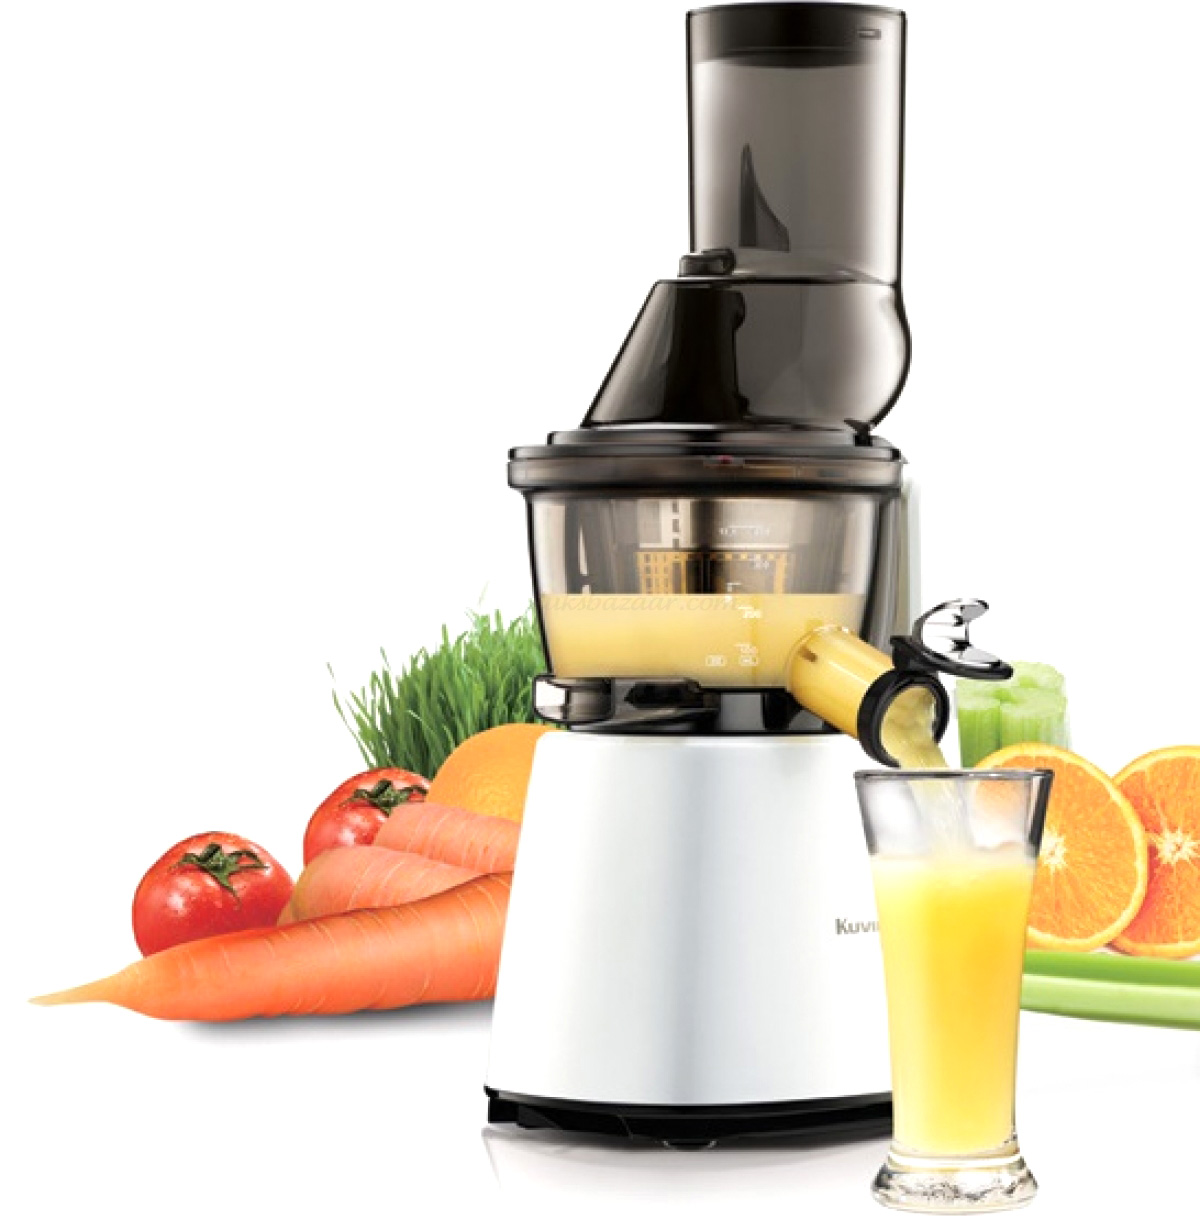 Slow Juicer Kuvings Big Mouth : Slow Juicer Kuvings. Kuvings Whole Slow Juicer Chef Cs600. Juicer Themed Coloring Book. Kuvings ...